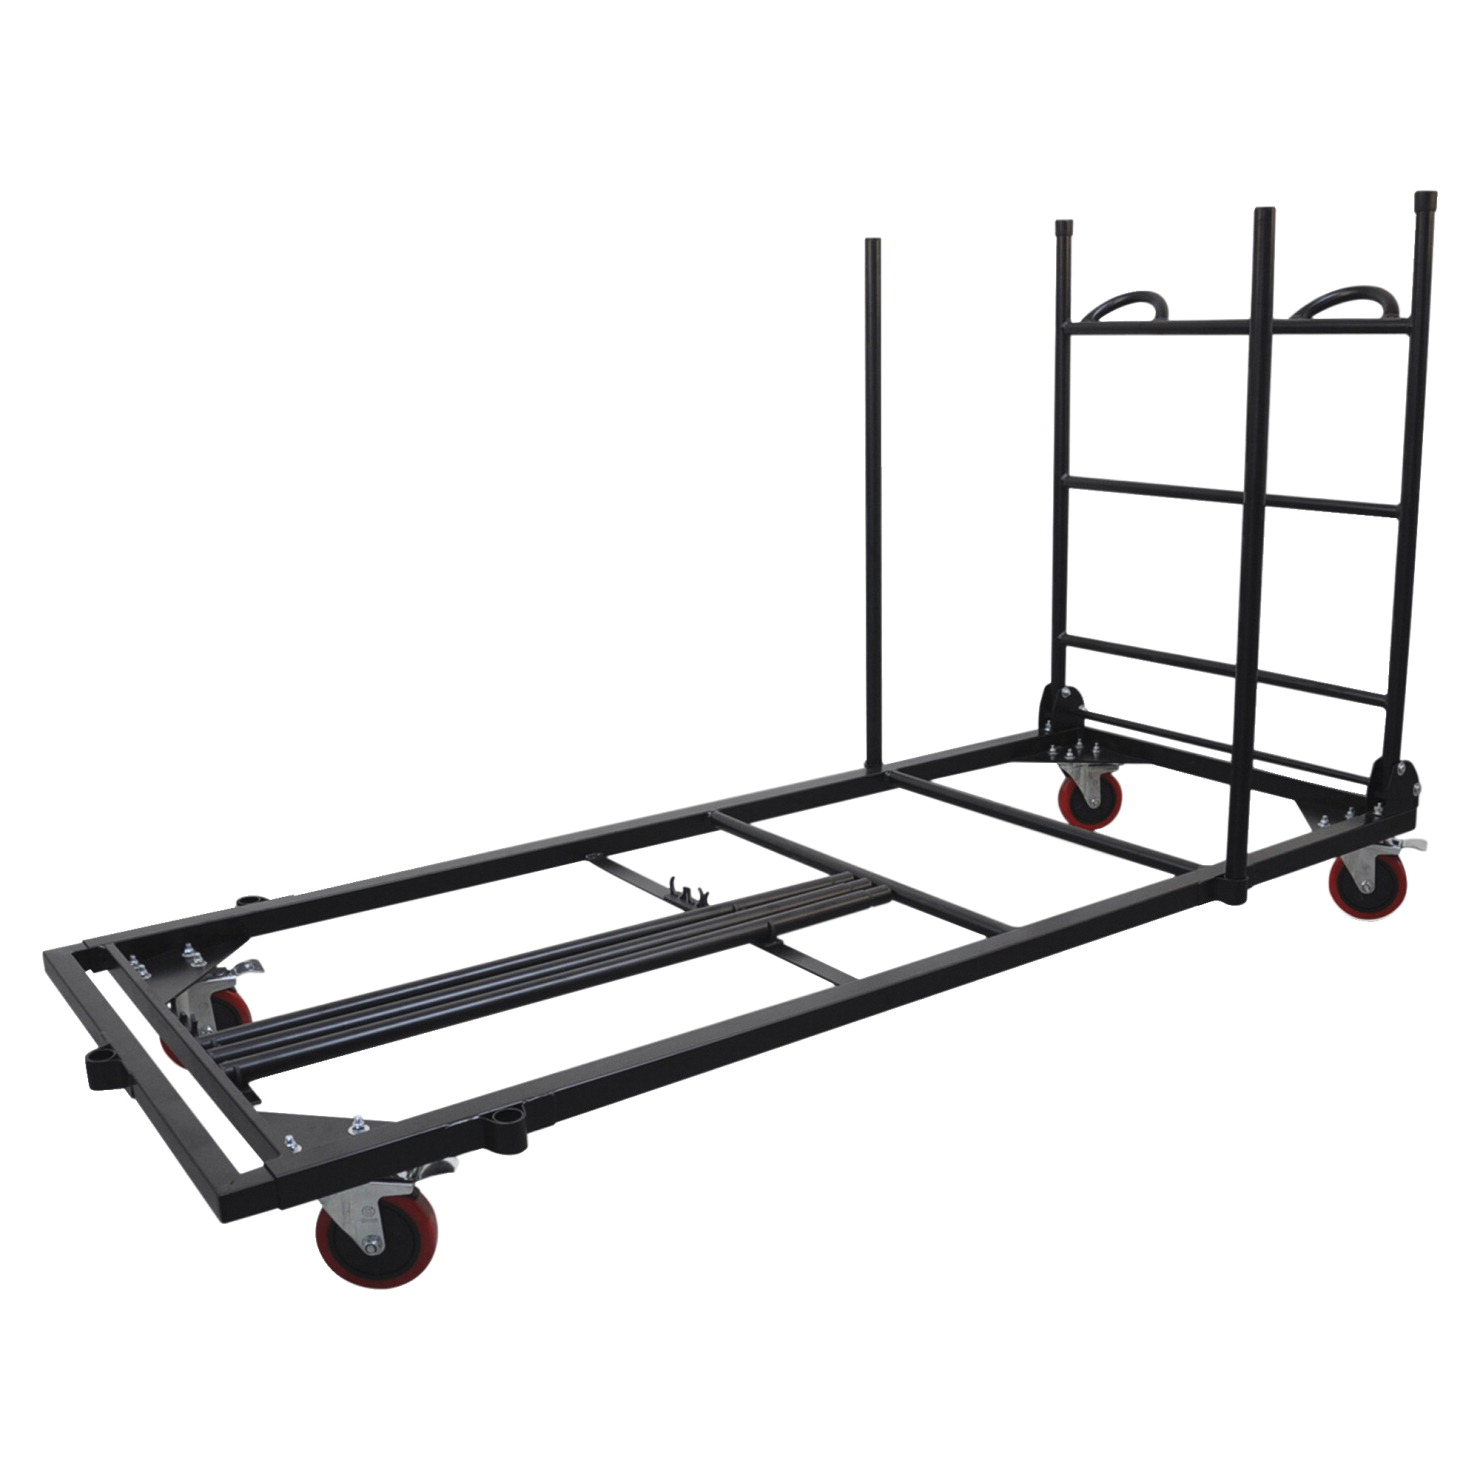 Lorell Blow Mold Rectangular Table Trolley Cart, 30 x 45-7/25 x 75-43/50 in, Charcoal